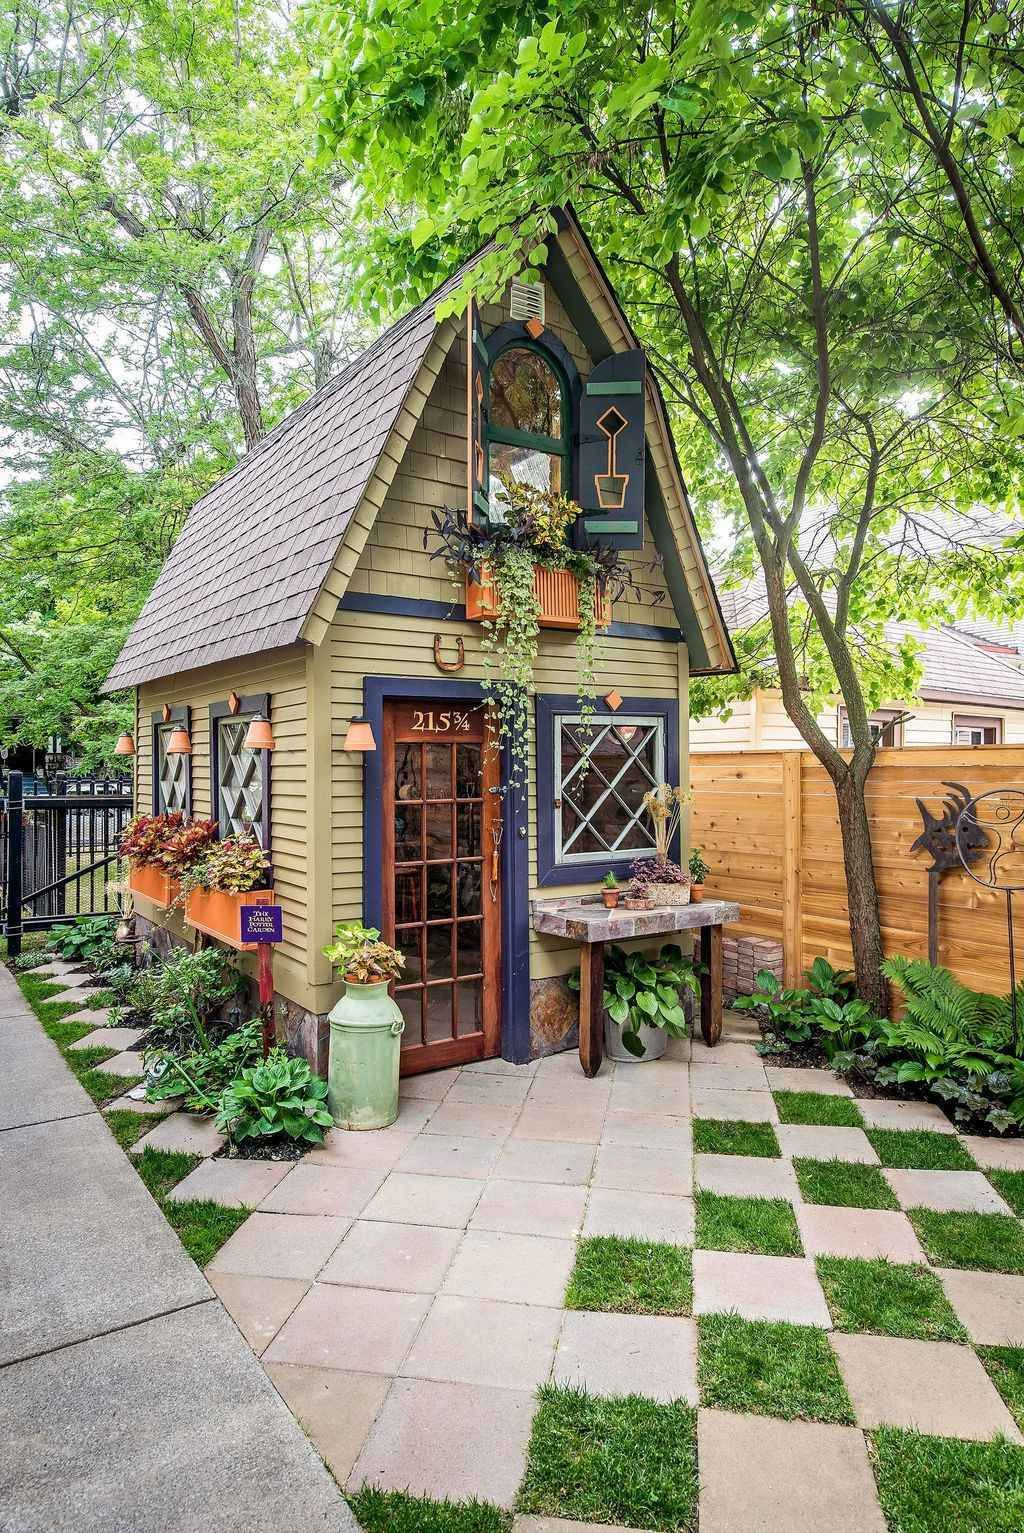 62 Stunning Small Cottage Garden Ideas For Backyard Landscaping Homixover Com Small Cottage Garden Ideas Cottage Garden Backyard Backyard landscaping ideas with sheds